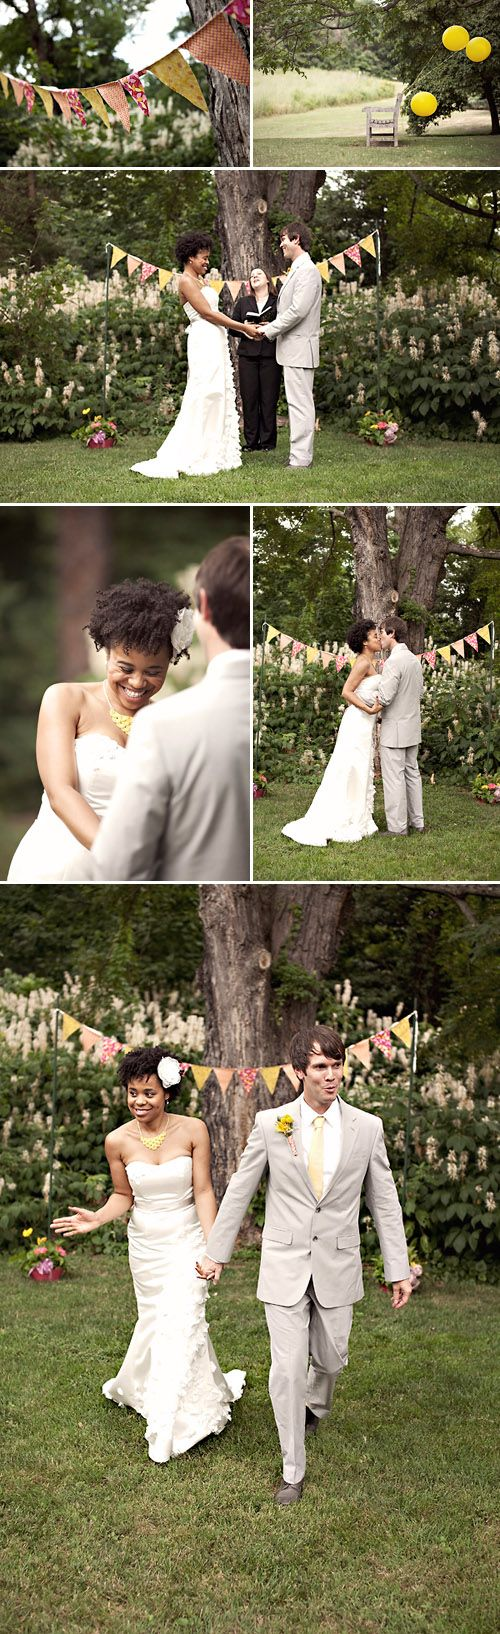 natural hair bride + DIY wedding. i love their signature silhouette and pennant flag banner on all of their stationery. couple branding; nice!